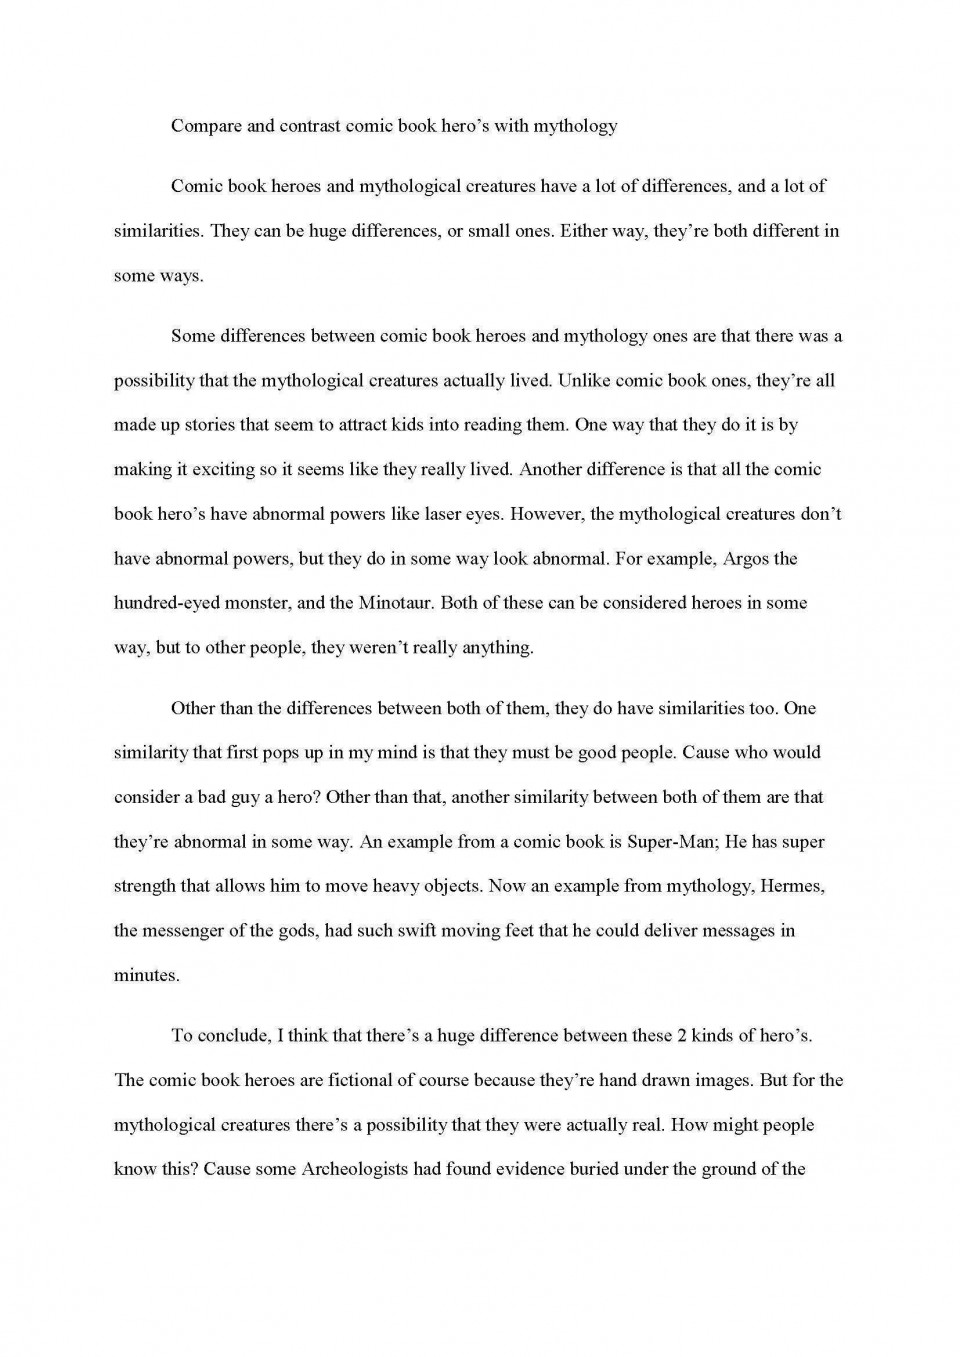 006 Excellent Compare And Contrast Essay Example College  For Topic Free Comparison960